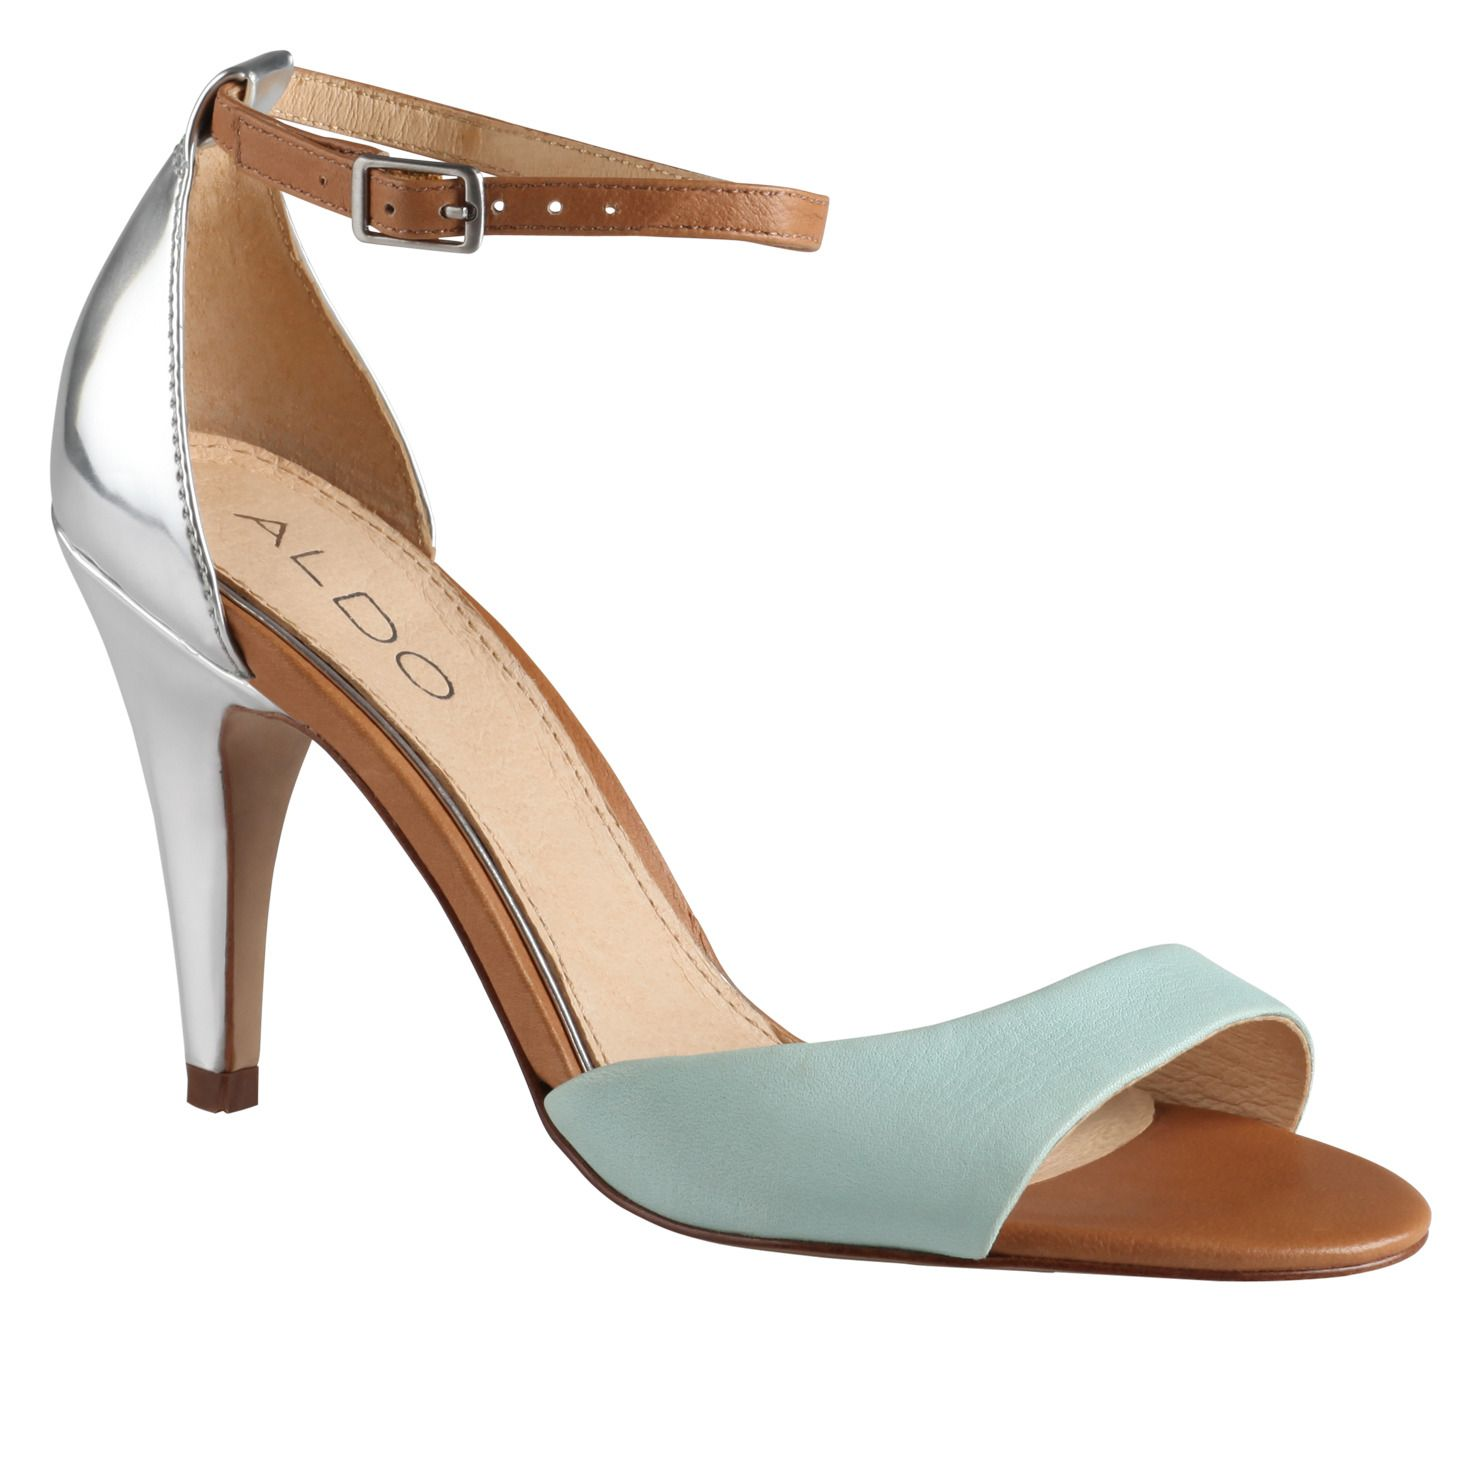 5fd232012669 GRUMNEY - womens high heels sandals for sale at ALDO Shoes.